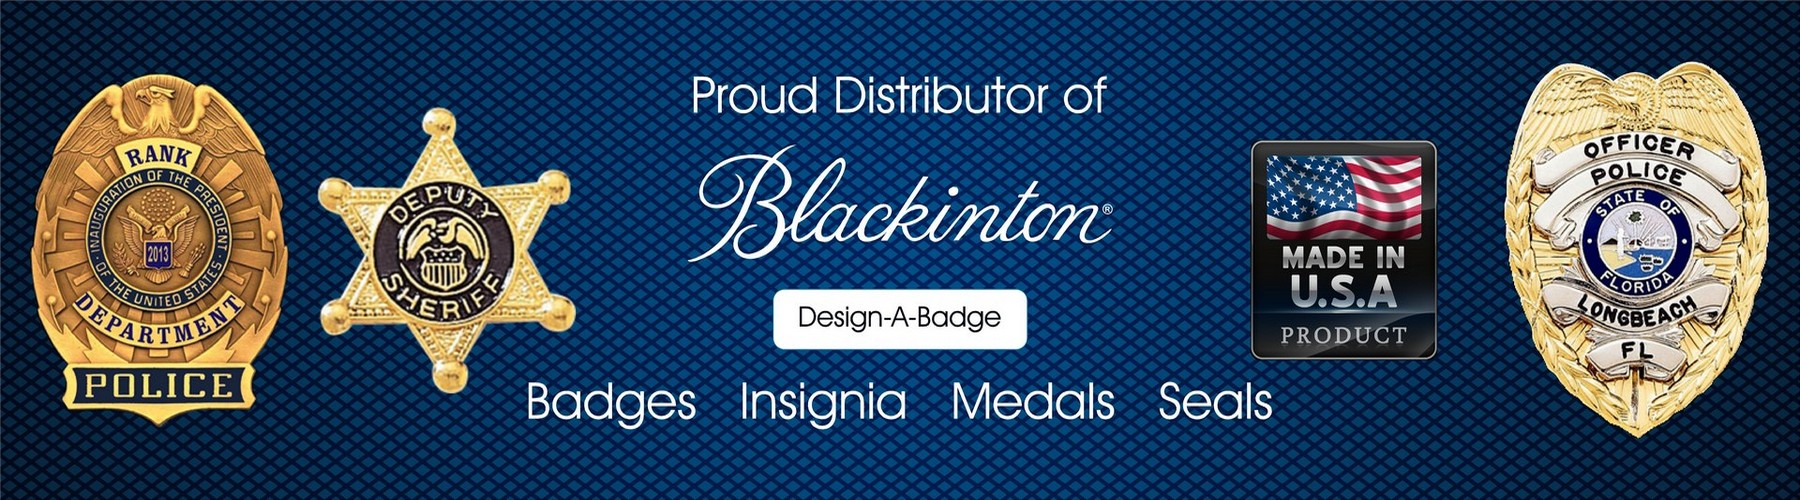 Proud distributor of Blackinton - Badges, Insignias, Medas, Seals - Design a Badge